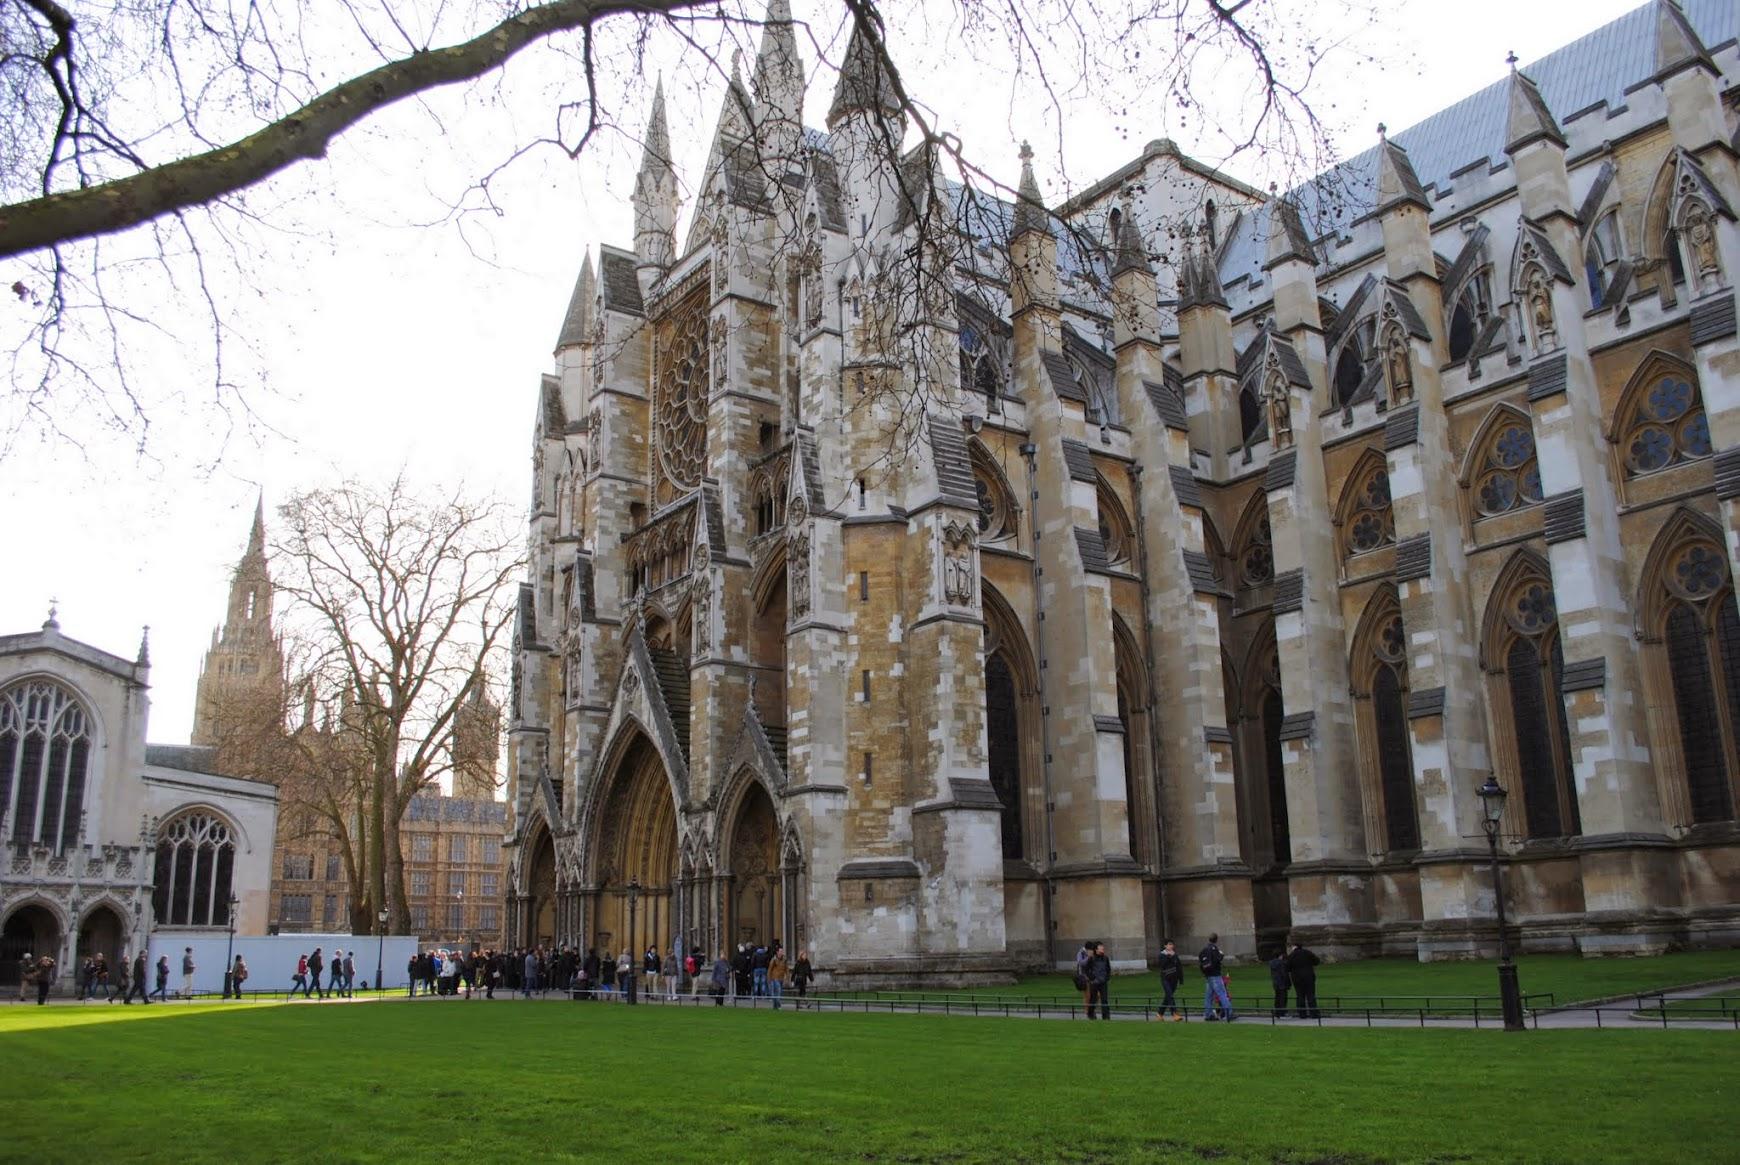 My Photos: London -- Westminster Abbey